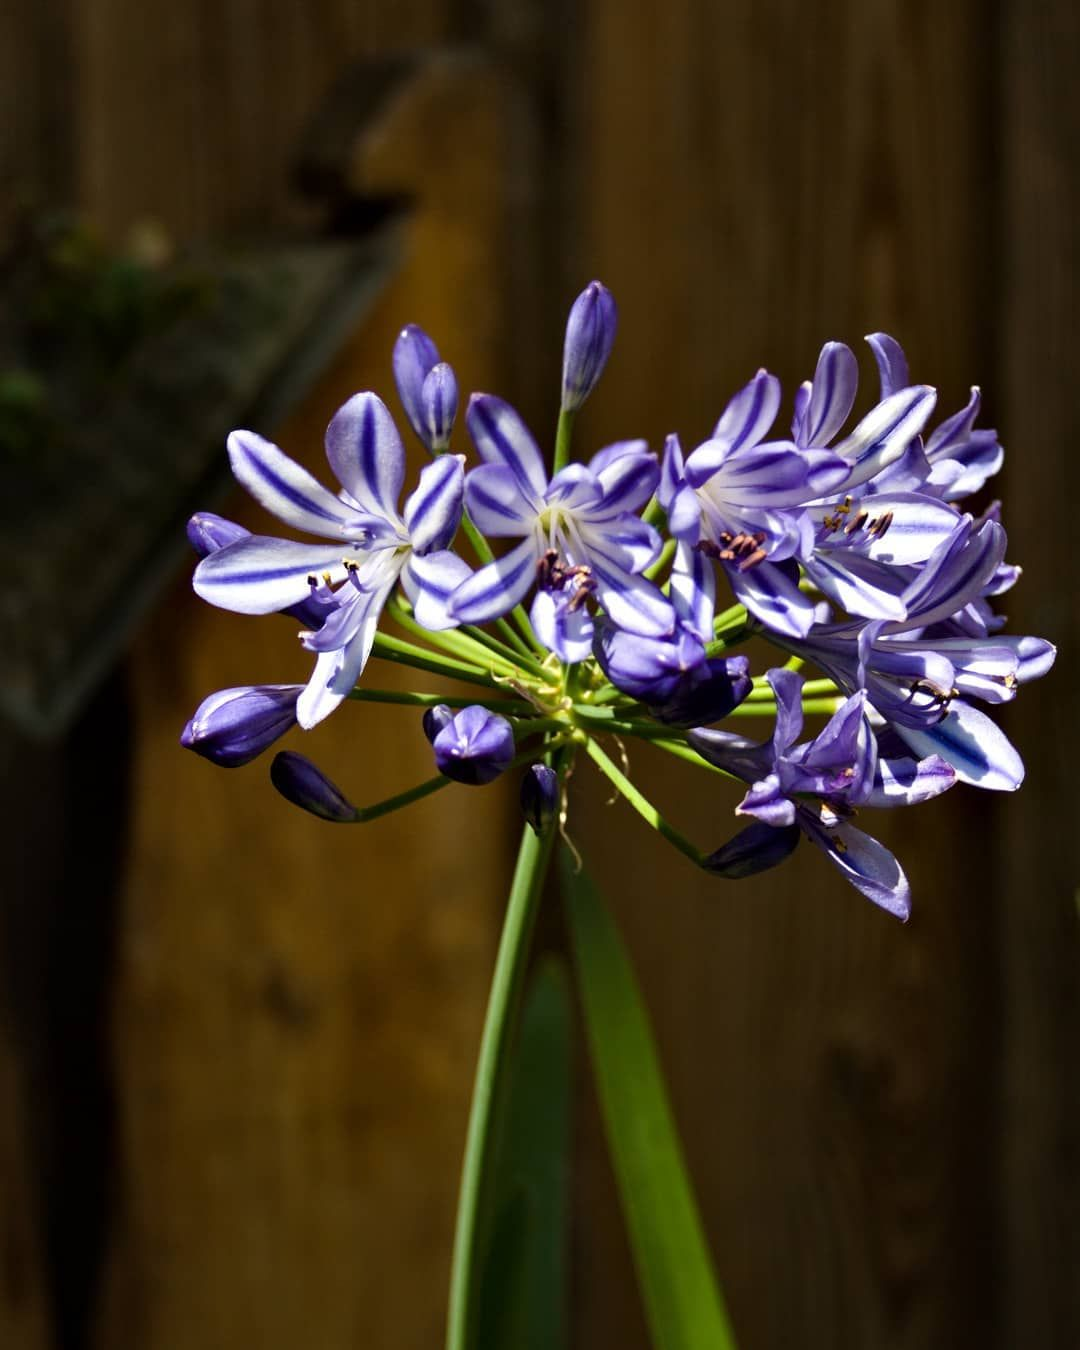 African Lily Agapanthus Africanus Here Are Some Quotes About Flowers I M Really Quite Simple I Pl In 2020 African Lily Flower Quotes Planting Flowers